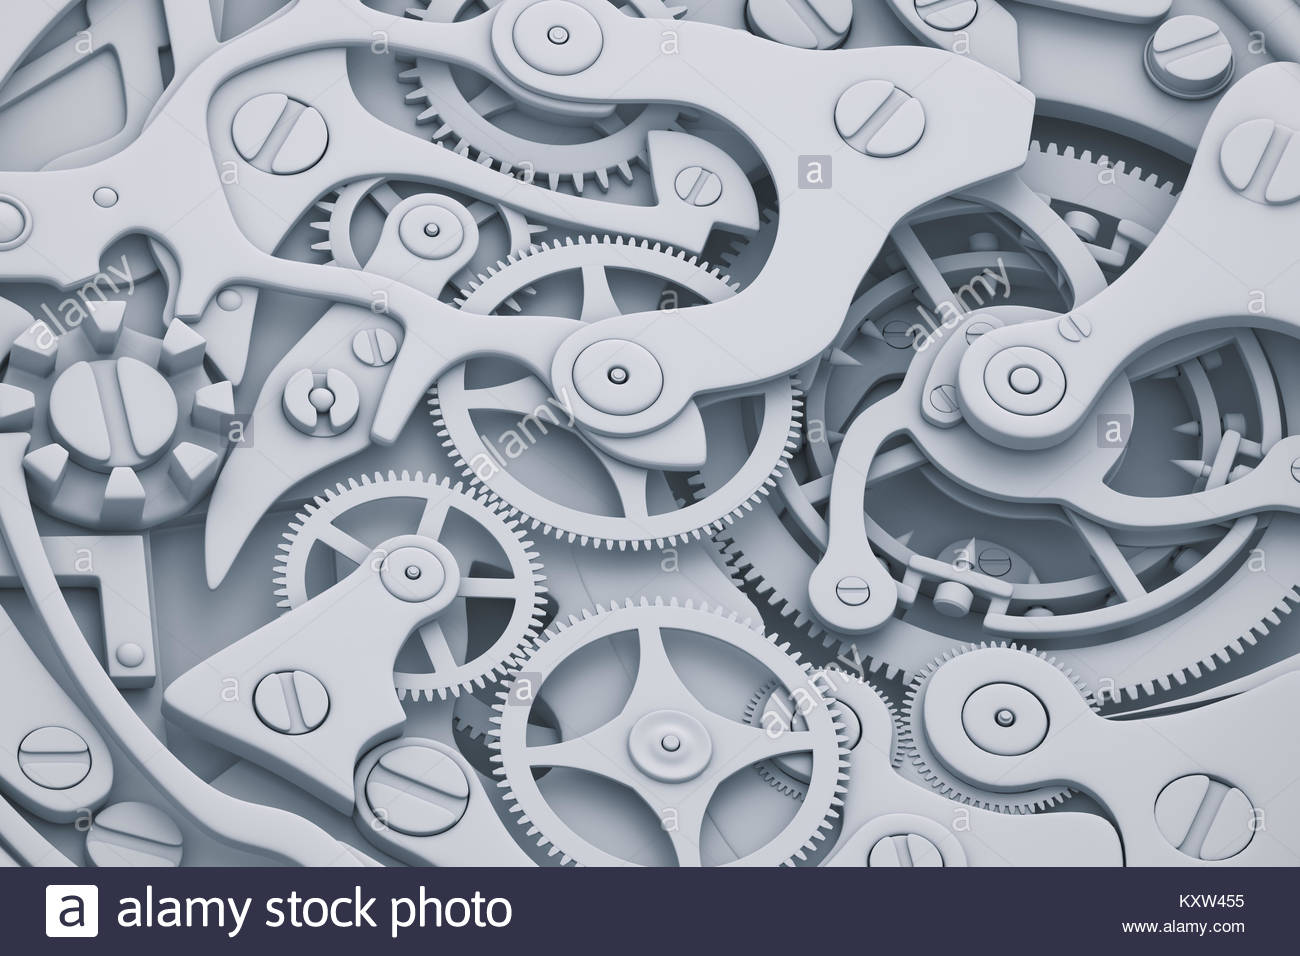 1300x956 Watch Mechanism 3d Illustration With Gears In Grayscale Colors